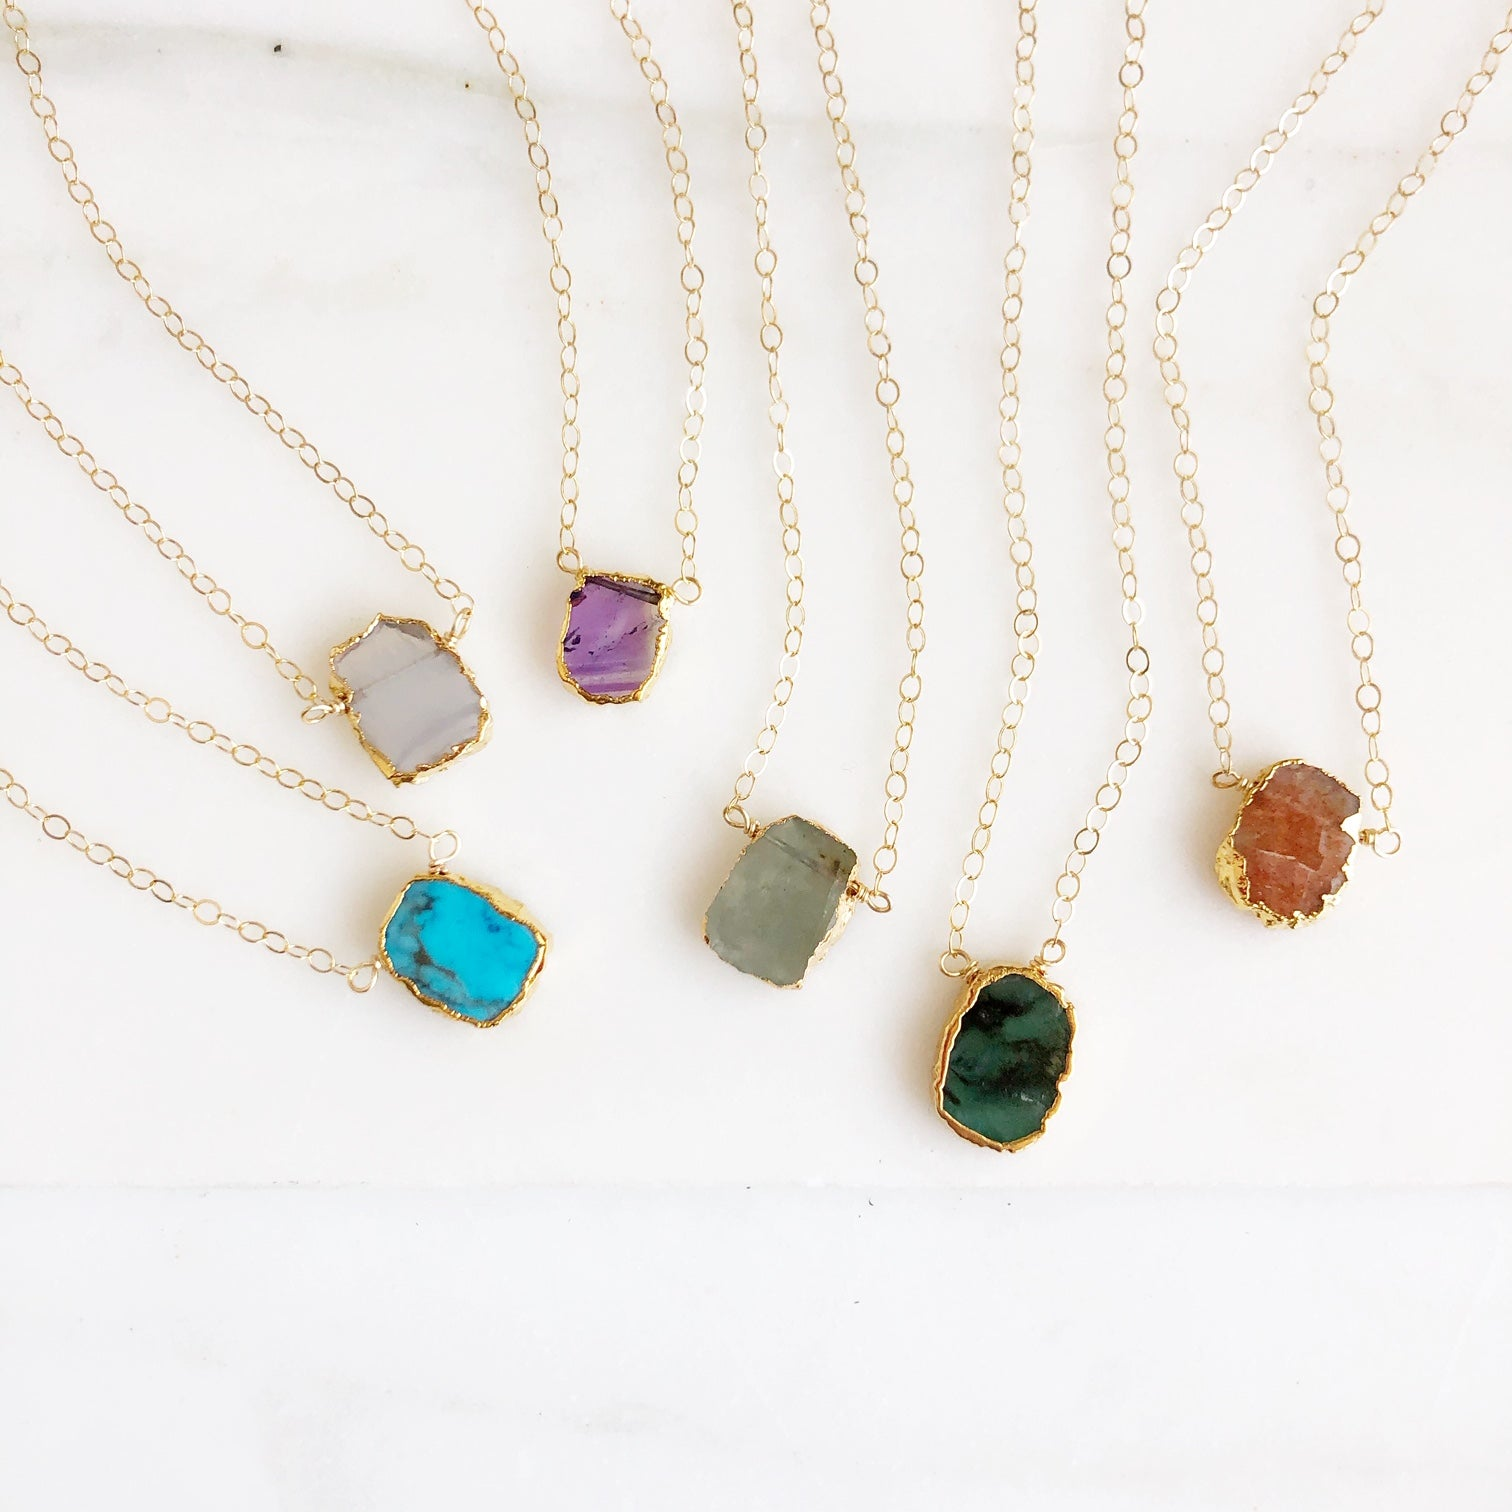 Dainty Gemstone Necklaces in Gold. Delicate Gemstone Slice Necklaces. Gemstone Layering Necklace.